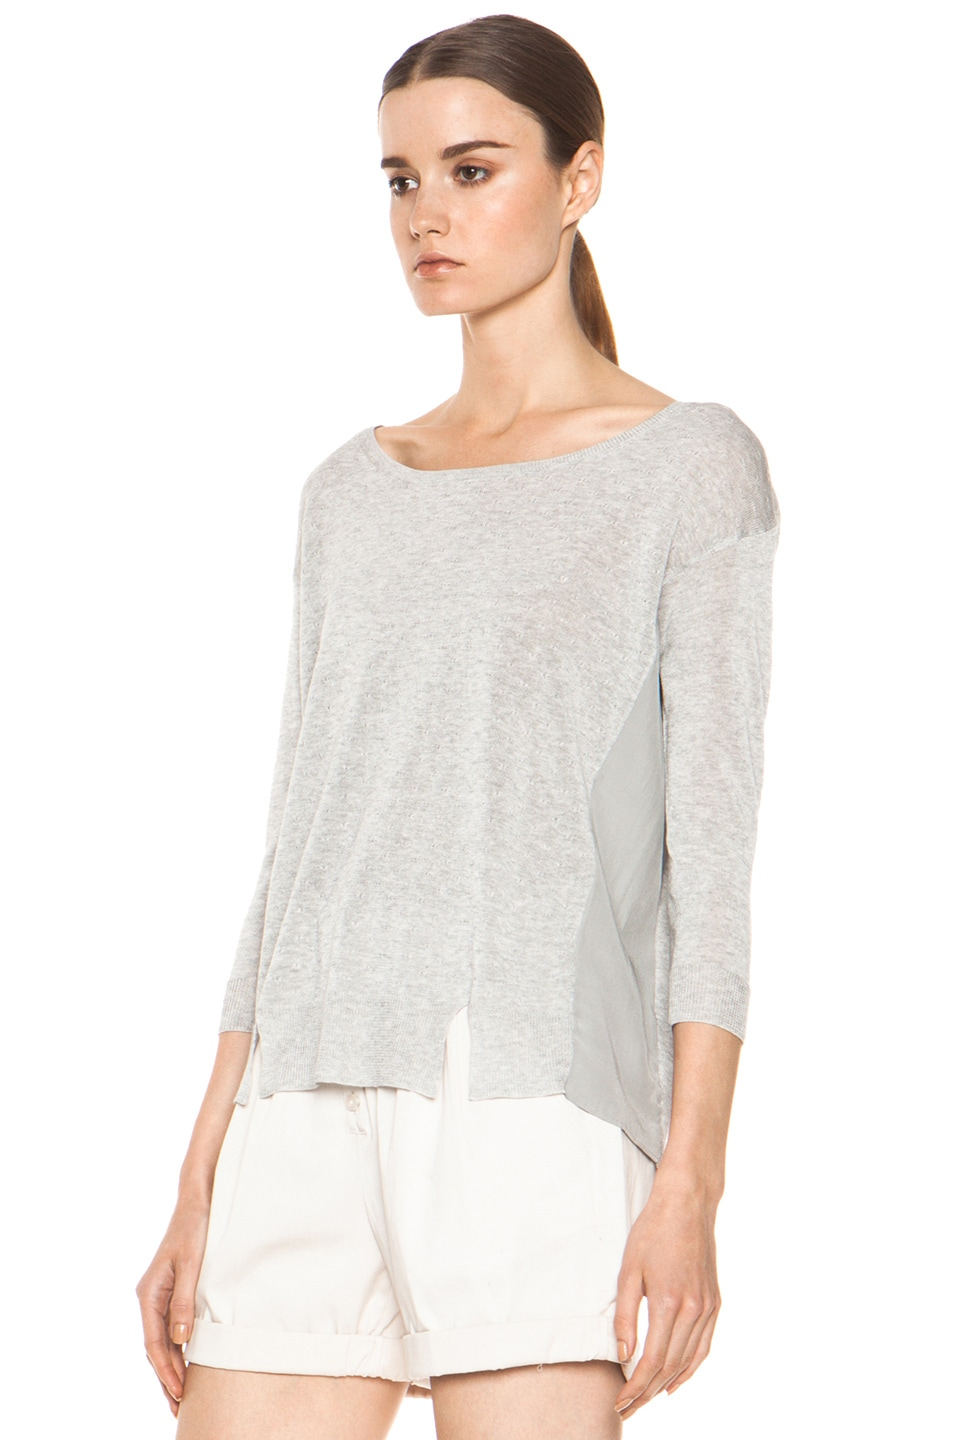 Image 2 of Girl. by Band of Outsiders Malibu Basic Sweater in Grey Heather